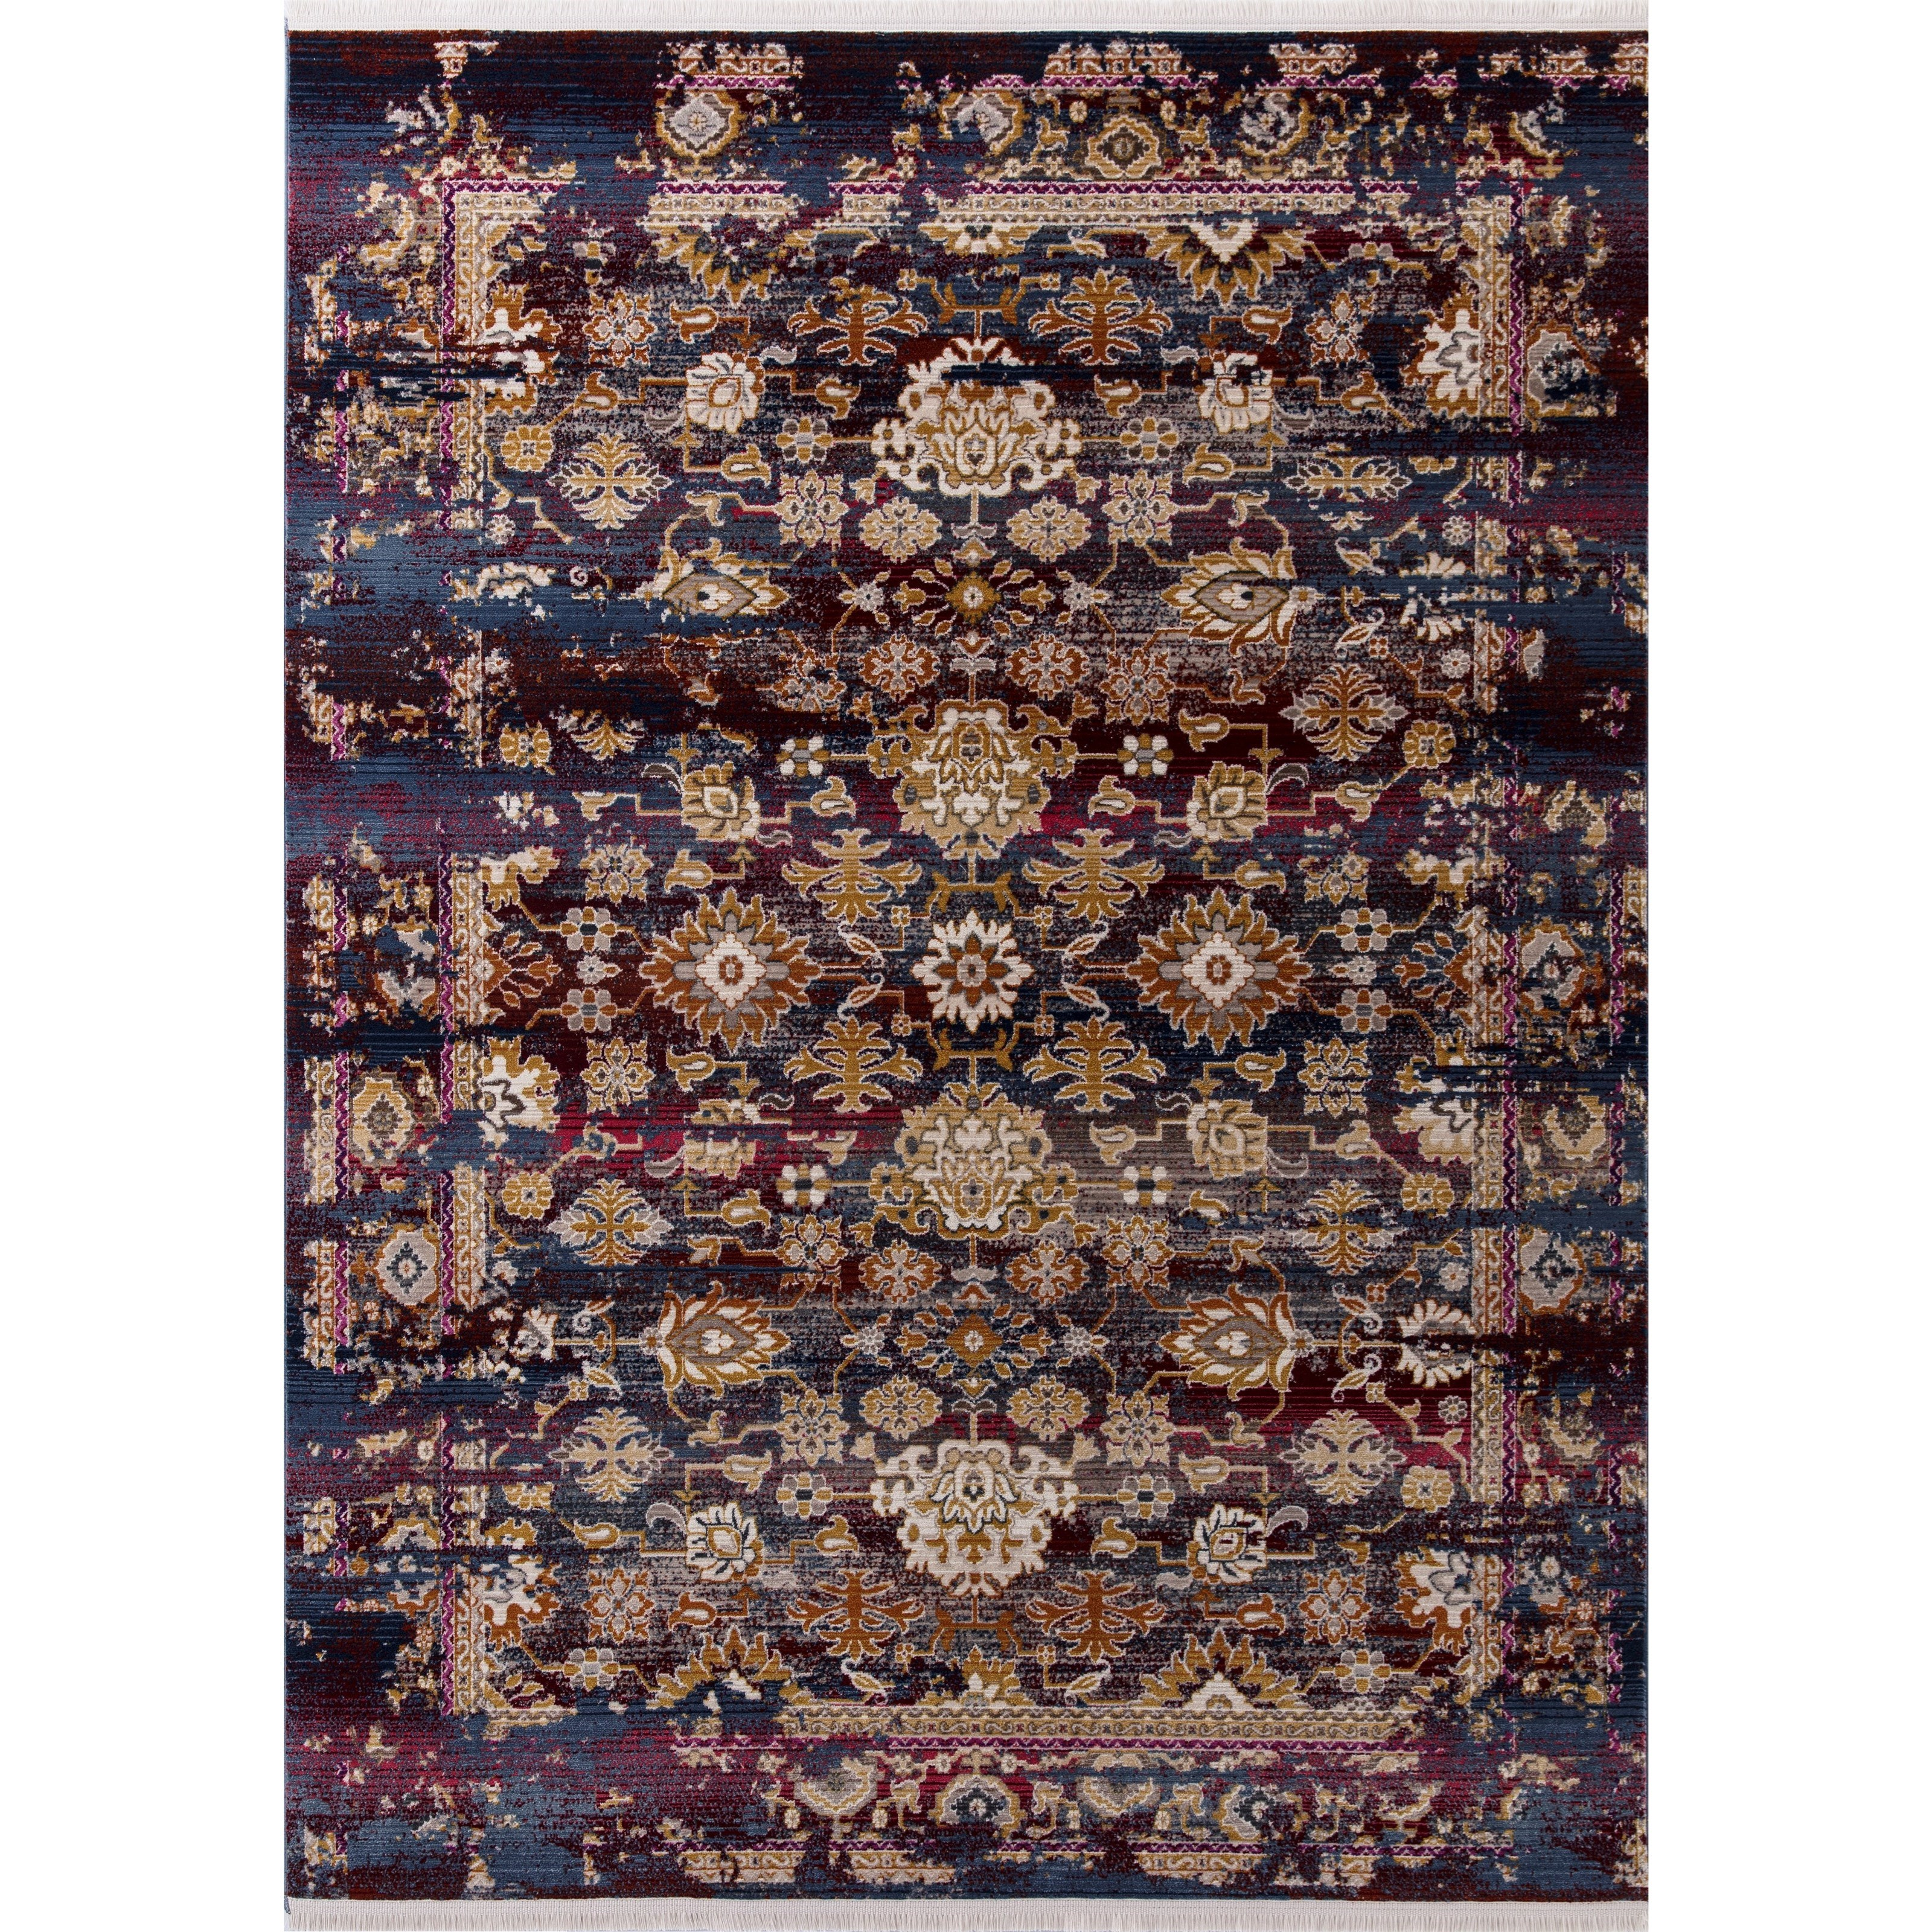 """Papillon 3'3"""" x 4'11"""" Jeweltone Cypress Rug by Kas at Wilson's Furniture"""